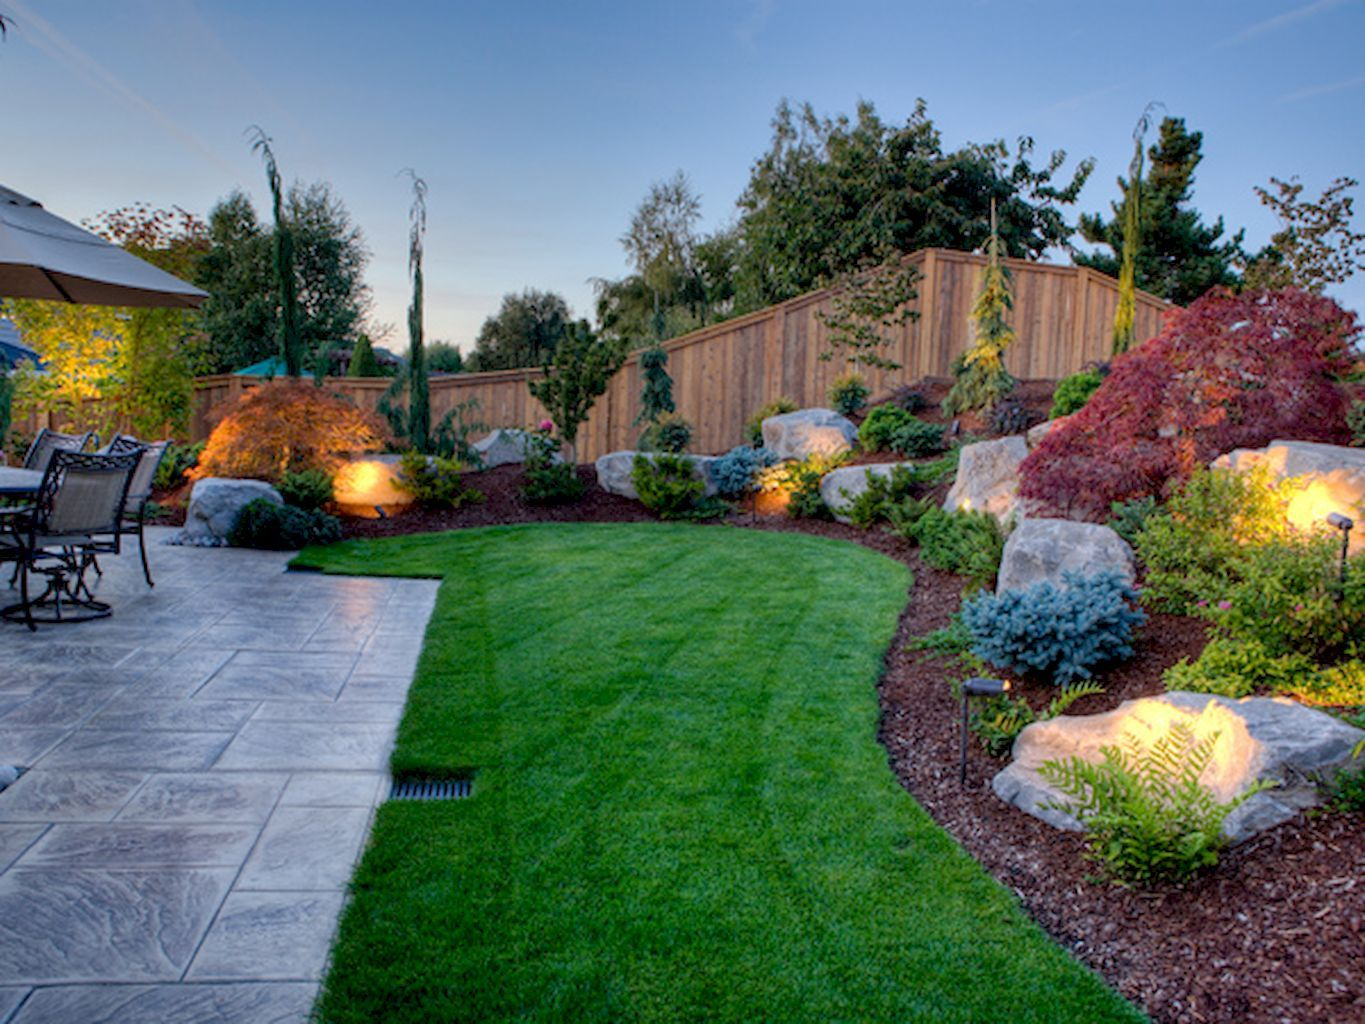 40 beautiful front yard landscaping ideas yard for Garden ideas for patio areas